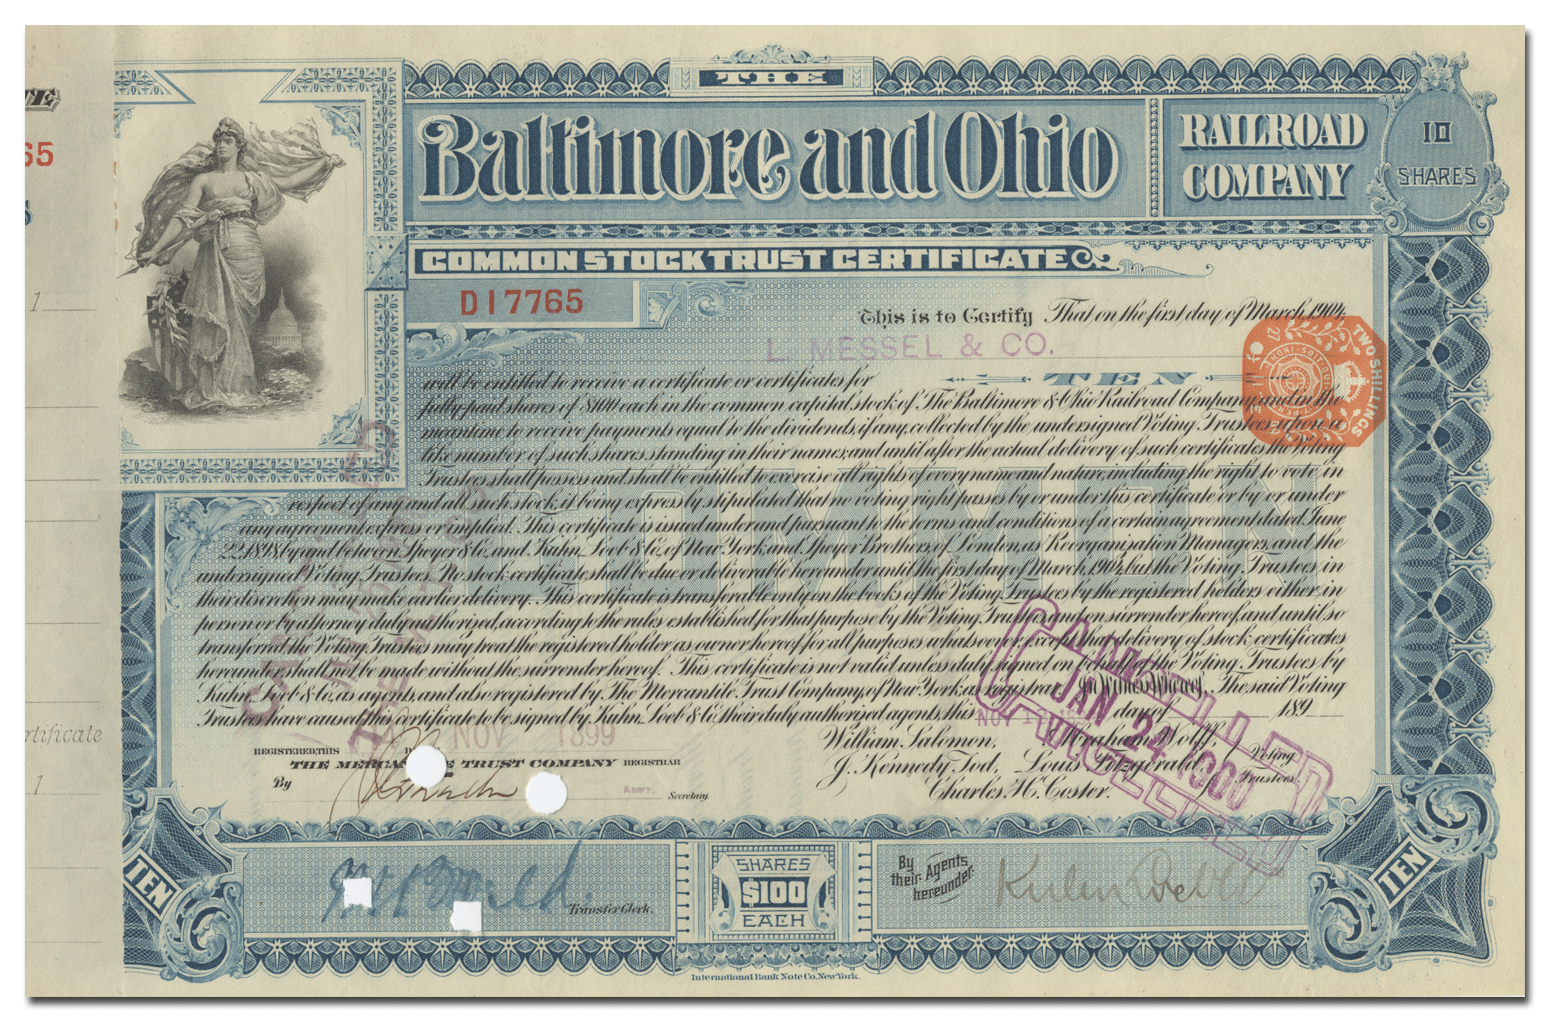 Chicago Great Western Railroad Company Stock Certificate